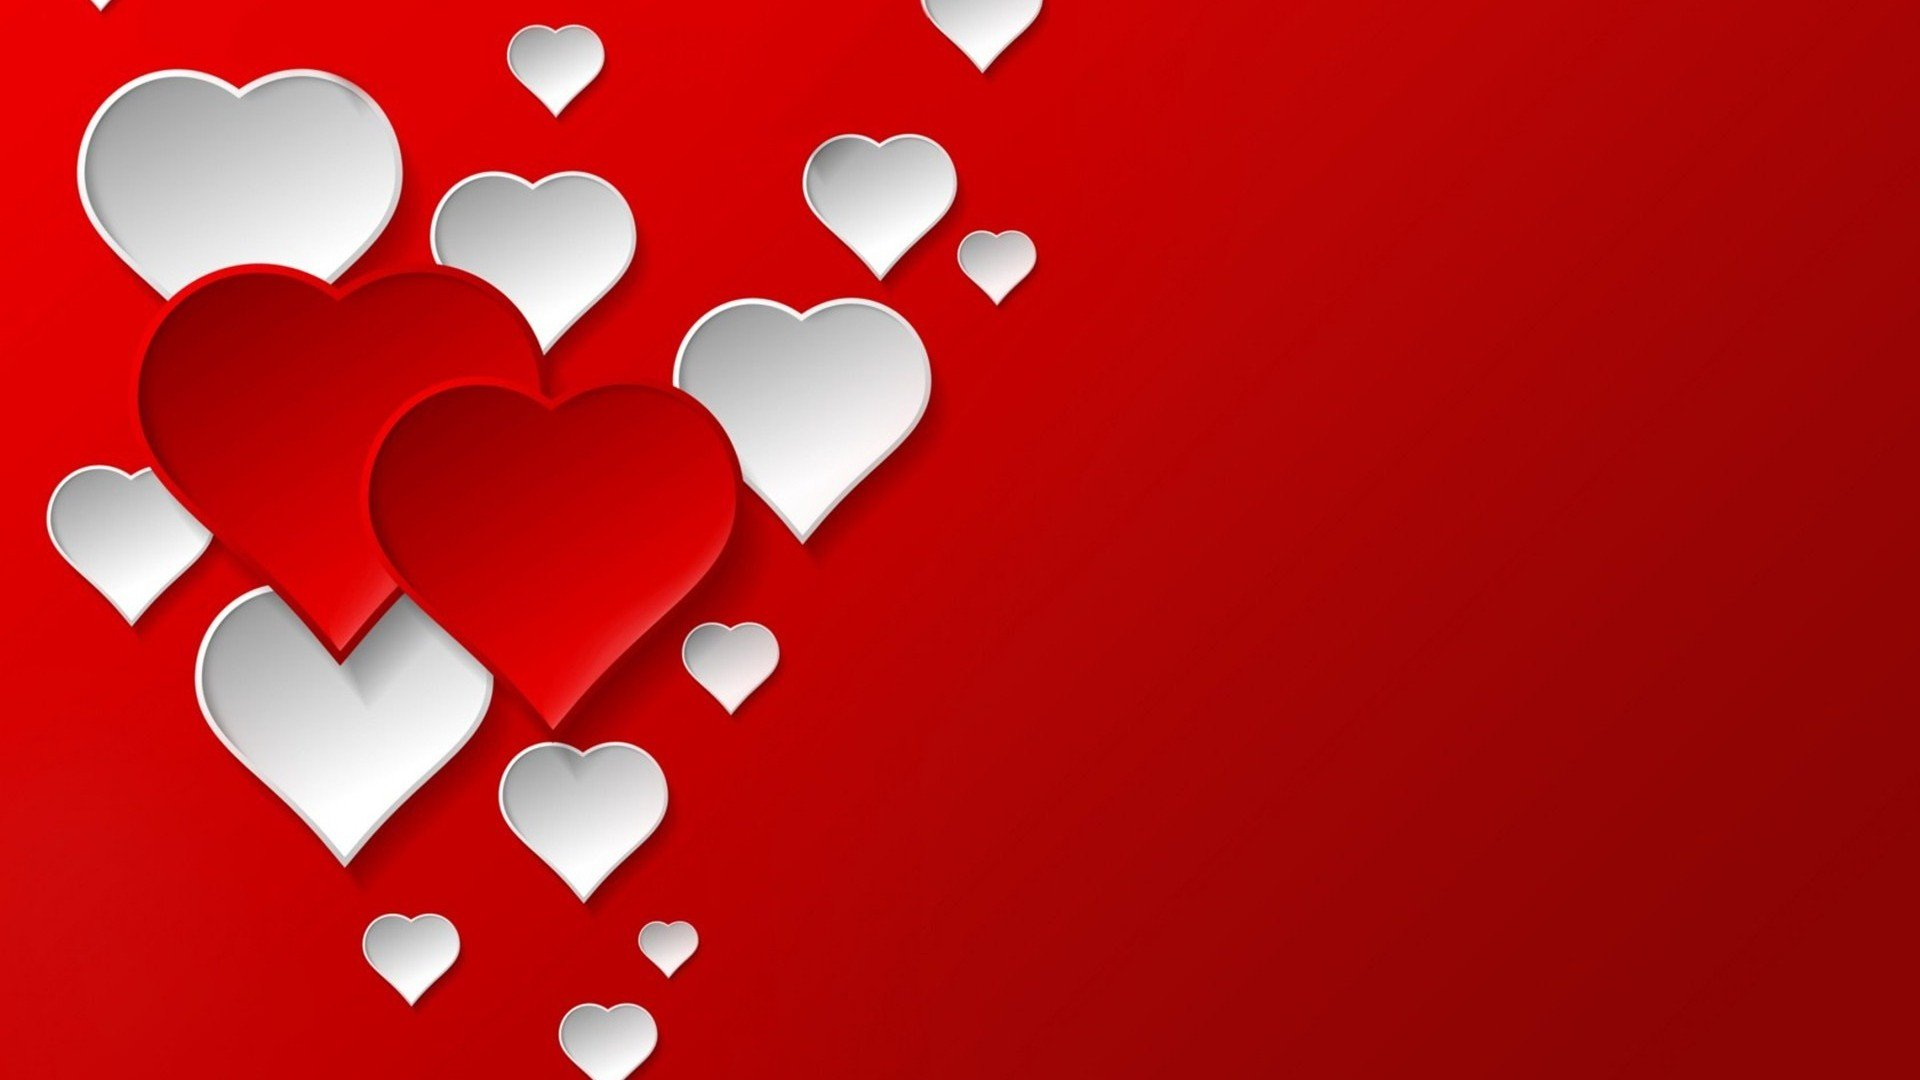 Valentines Heart Wallpaper